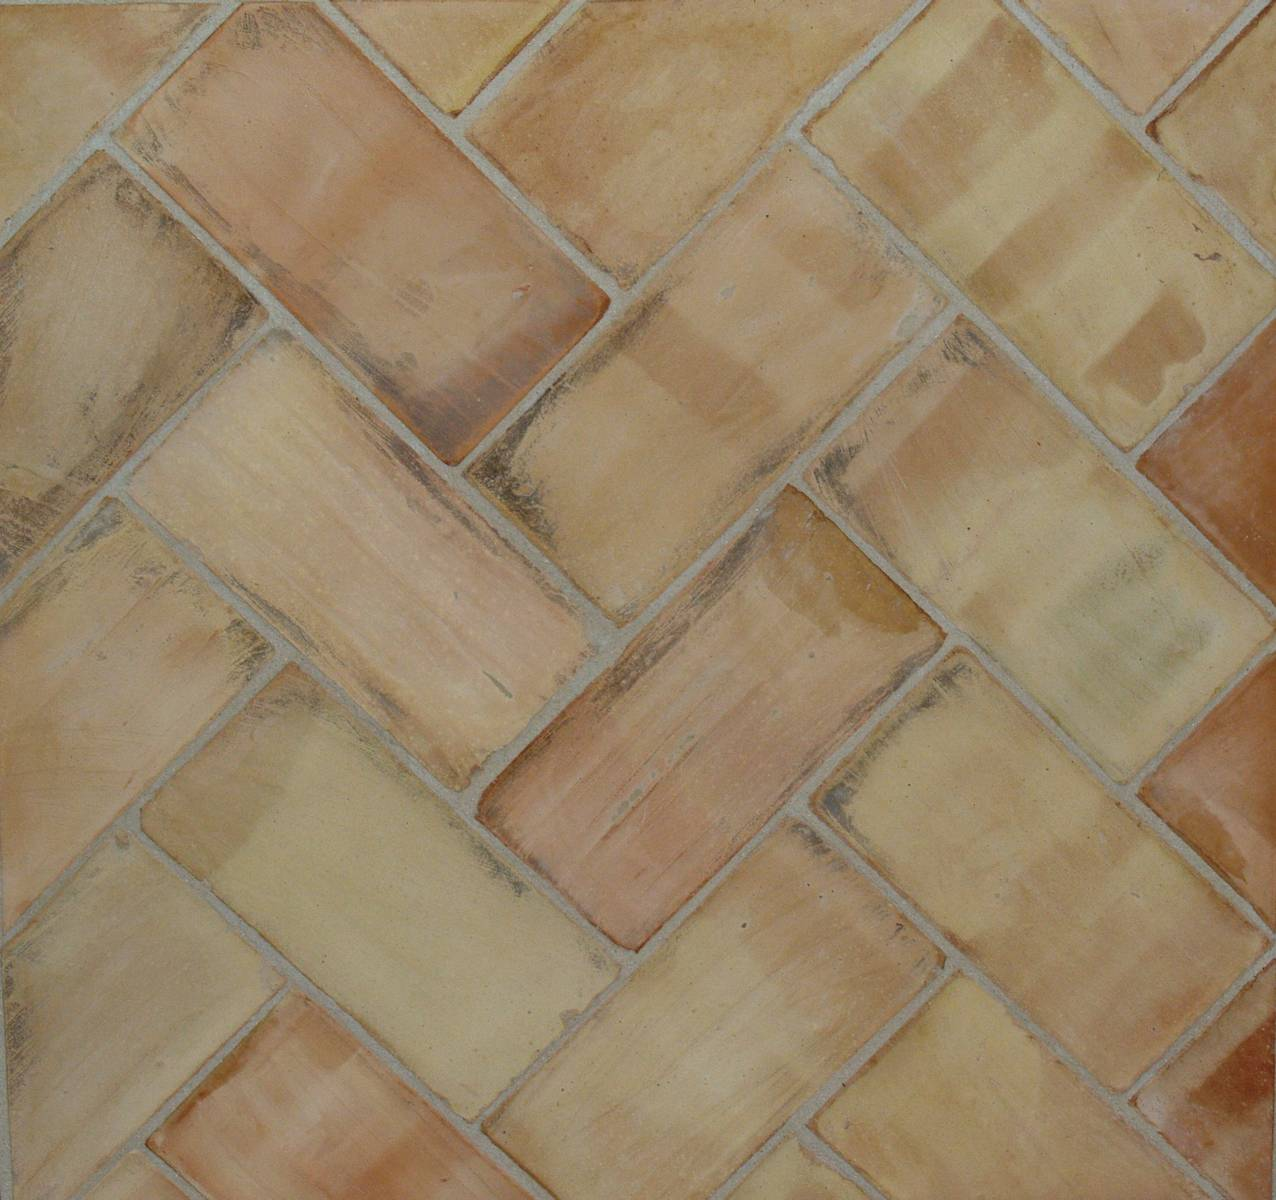 Rectangular Tiles 6x12x1 Pak Clay Khaprail Roof Tiles